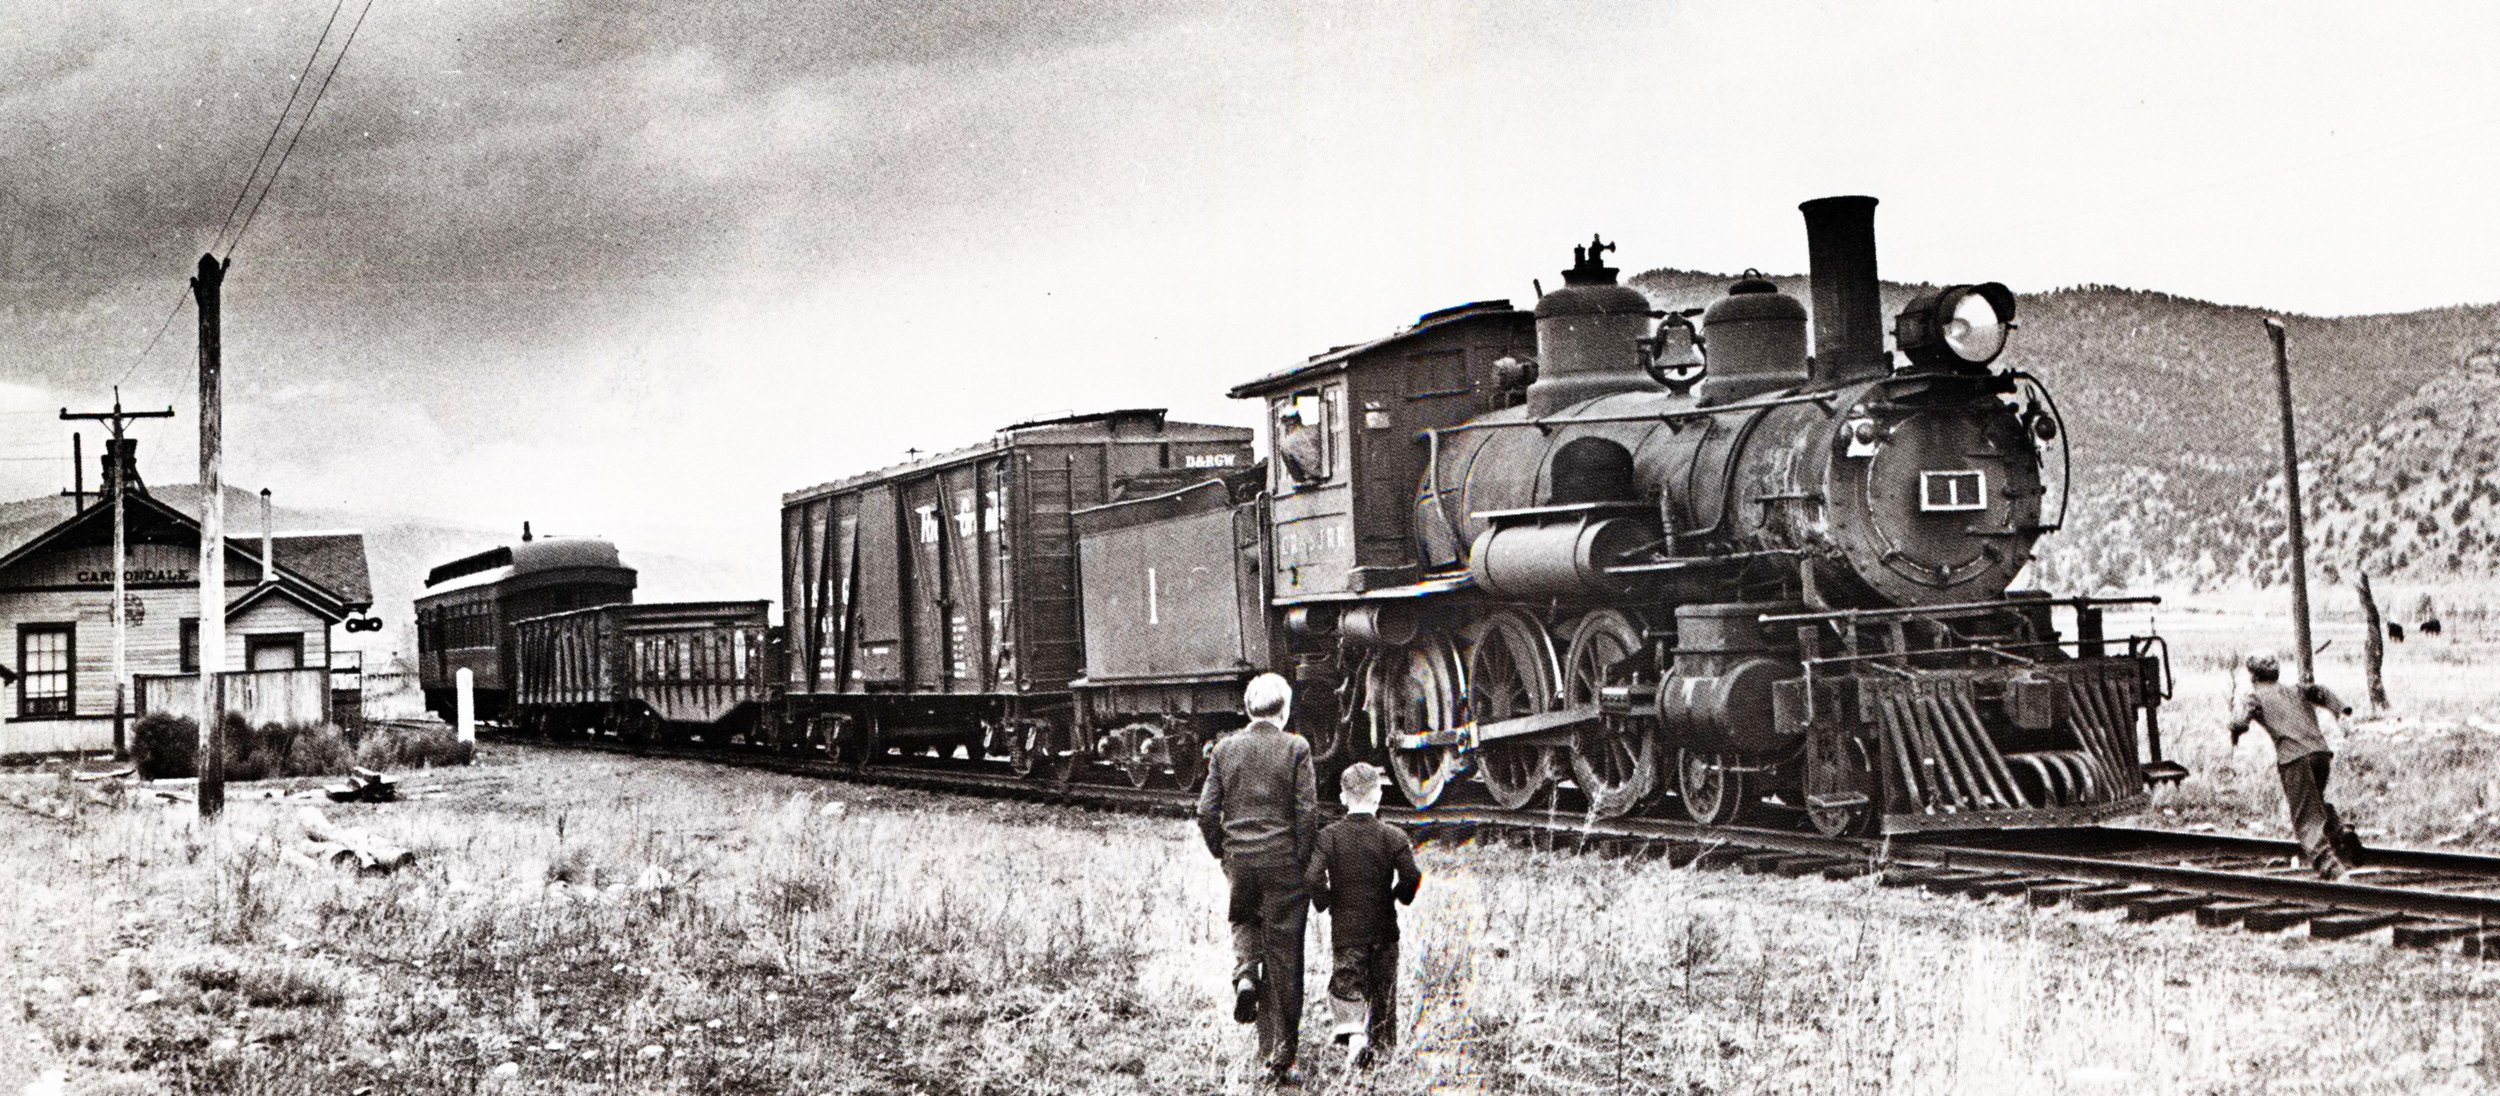 Crystal River & San Juan's locomotive #1 departs from Carbondale Depot on Oct. 25, 1941. Photo courtesy of Morrison A. Smith, from the collection of John W. Maxwell.